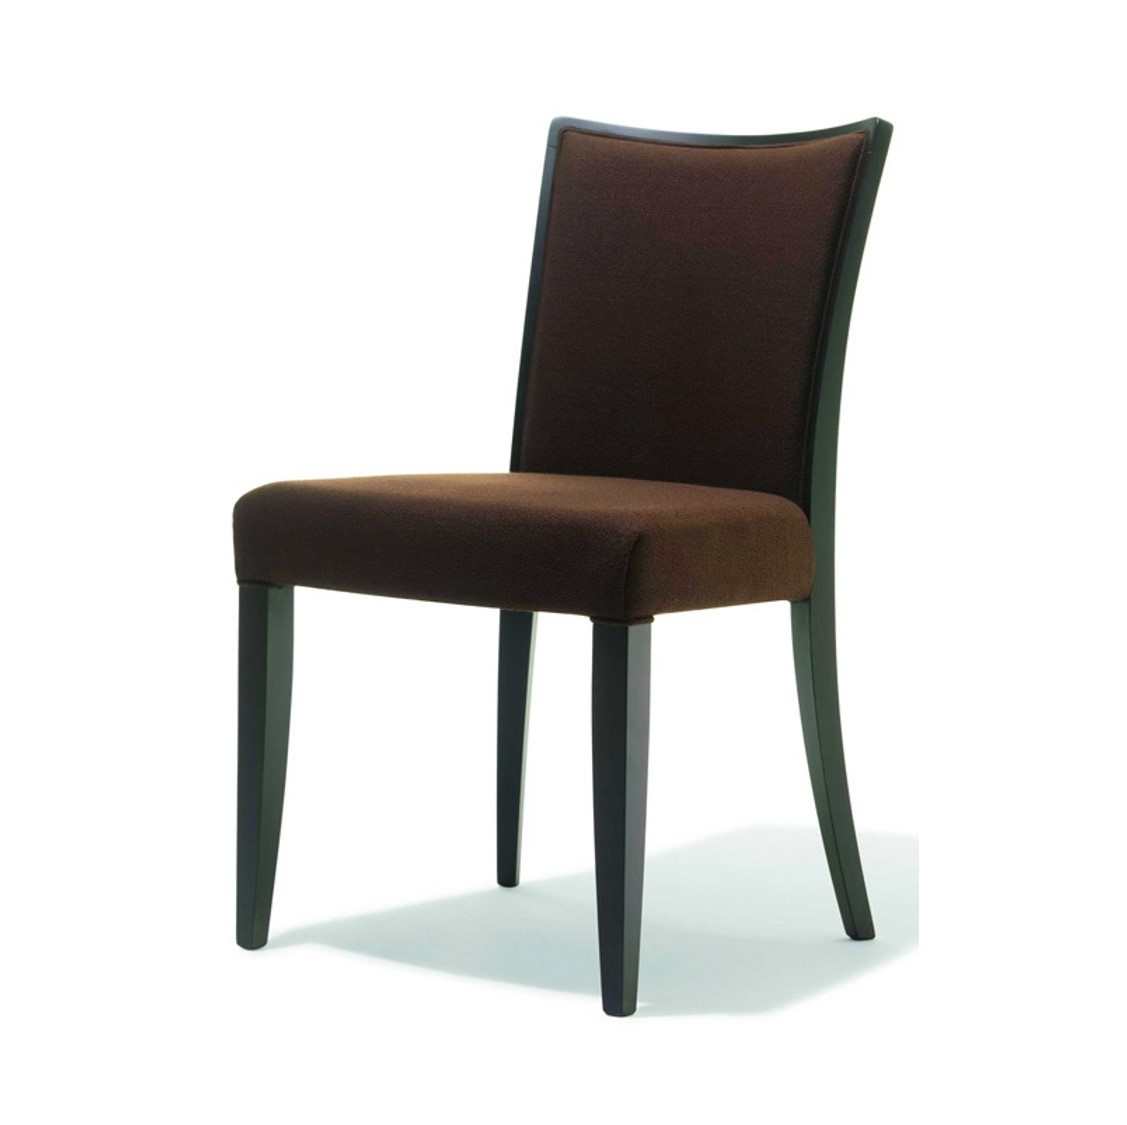 August side chair dining restaurant chair DeFrae contract furniture